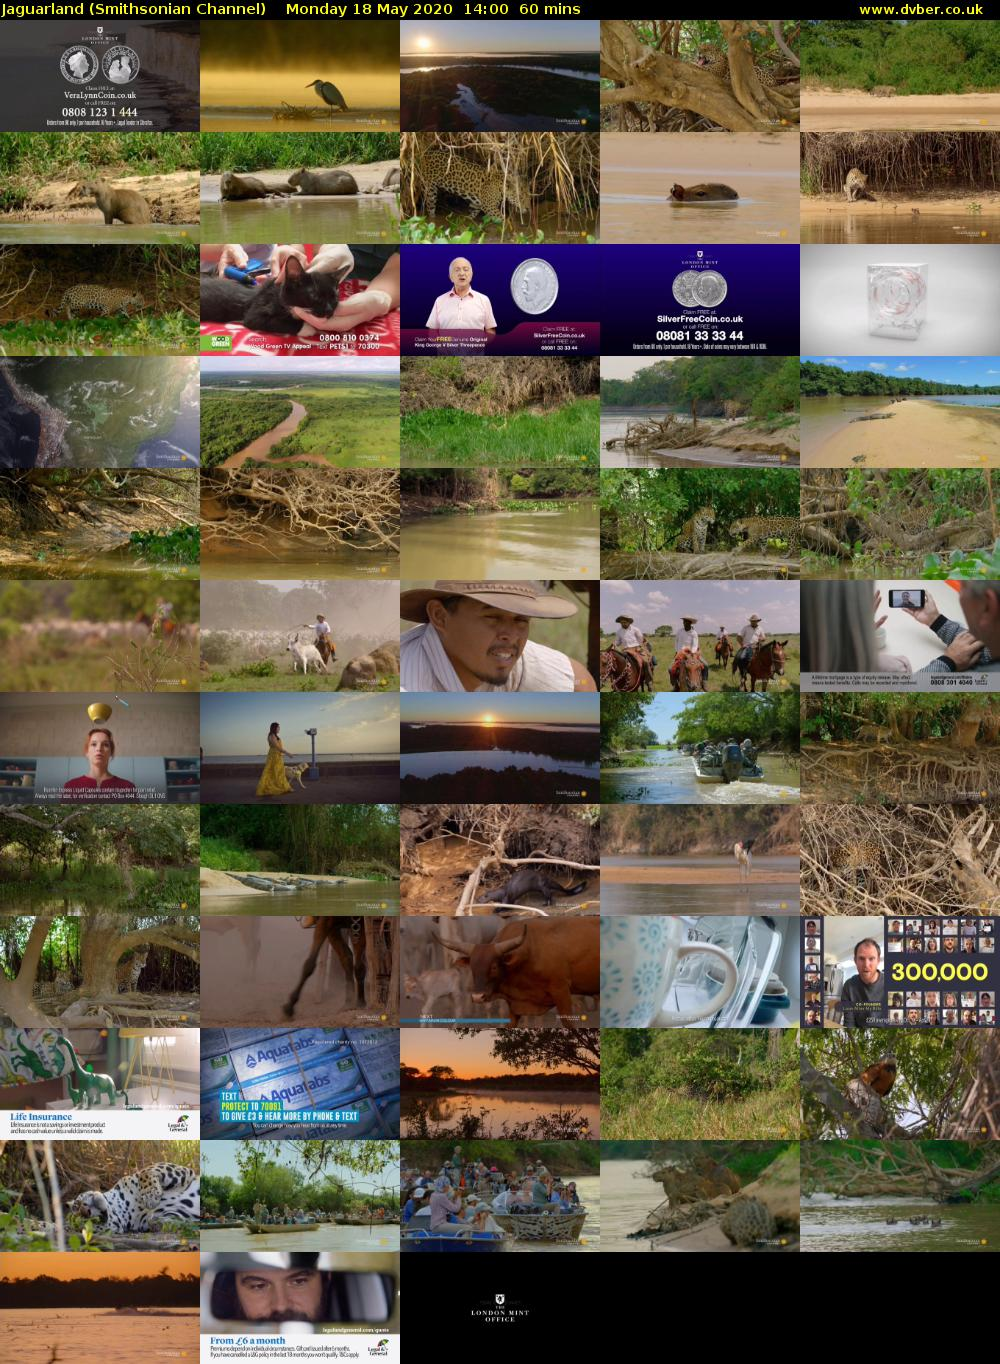 Jaguarland (Smithsonian Channel) Monday 18 May 2020 14:00 - 15:00